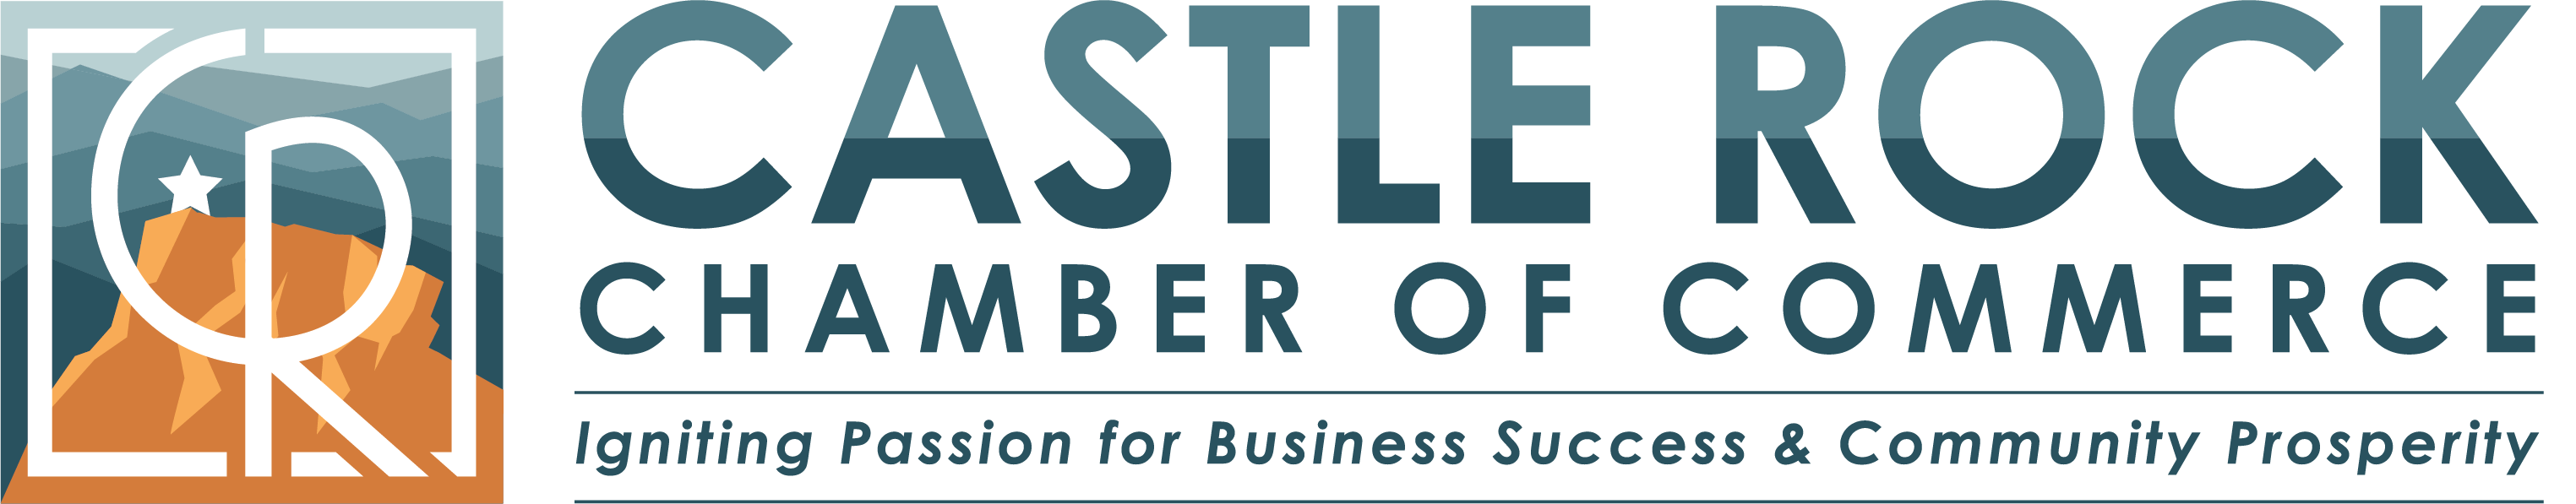 Signature Events - Castle Rock Chamber of Commerce